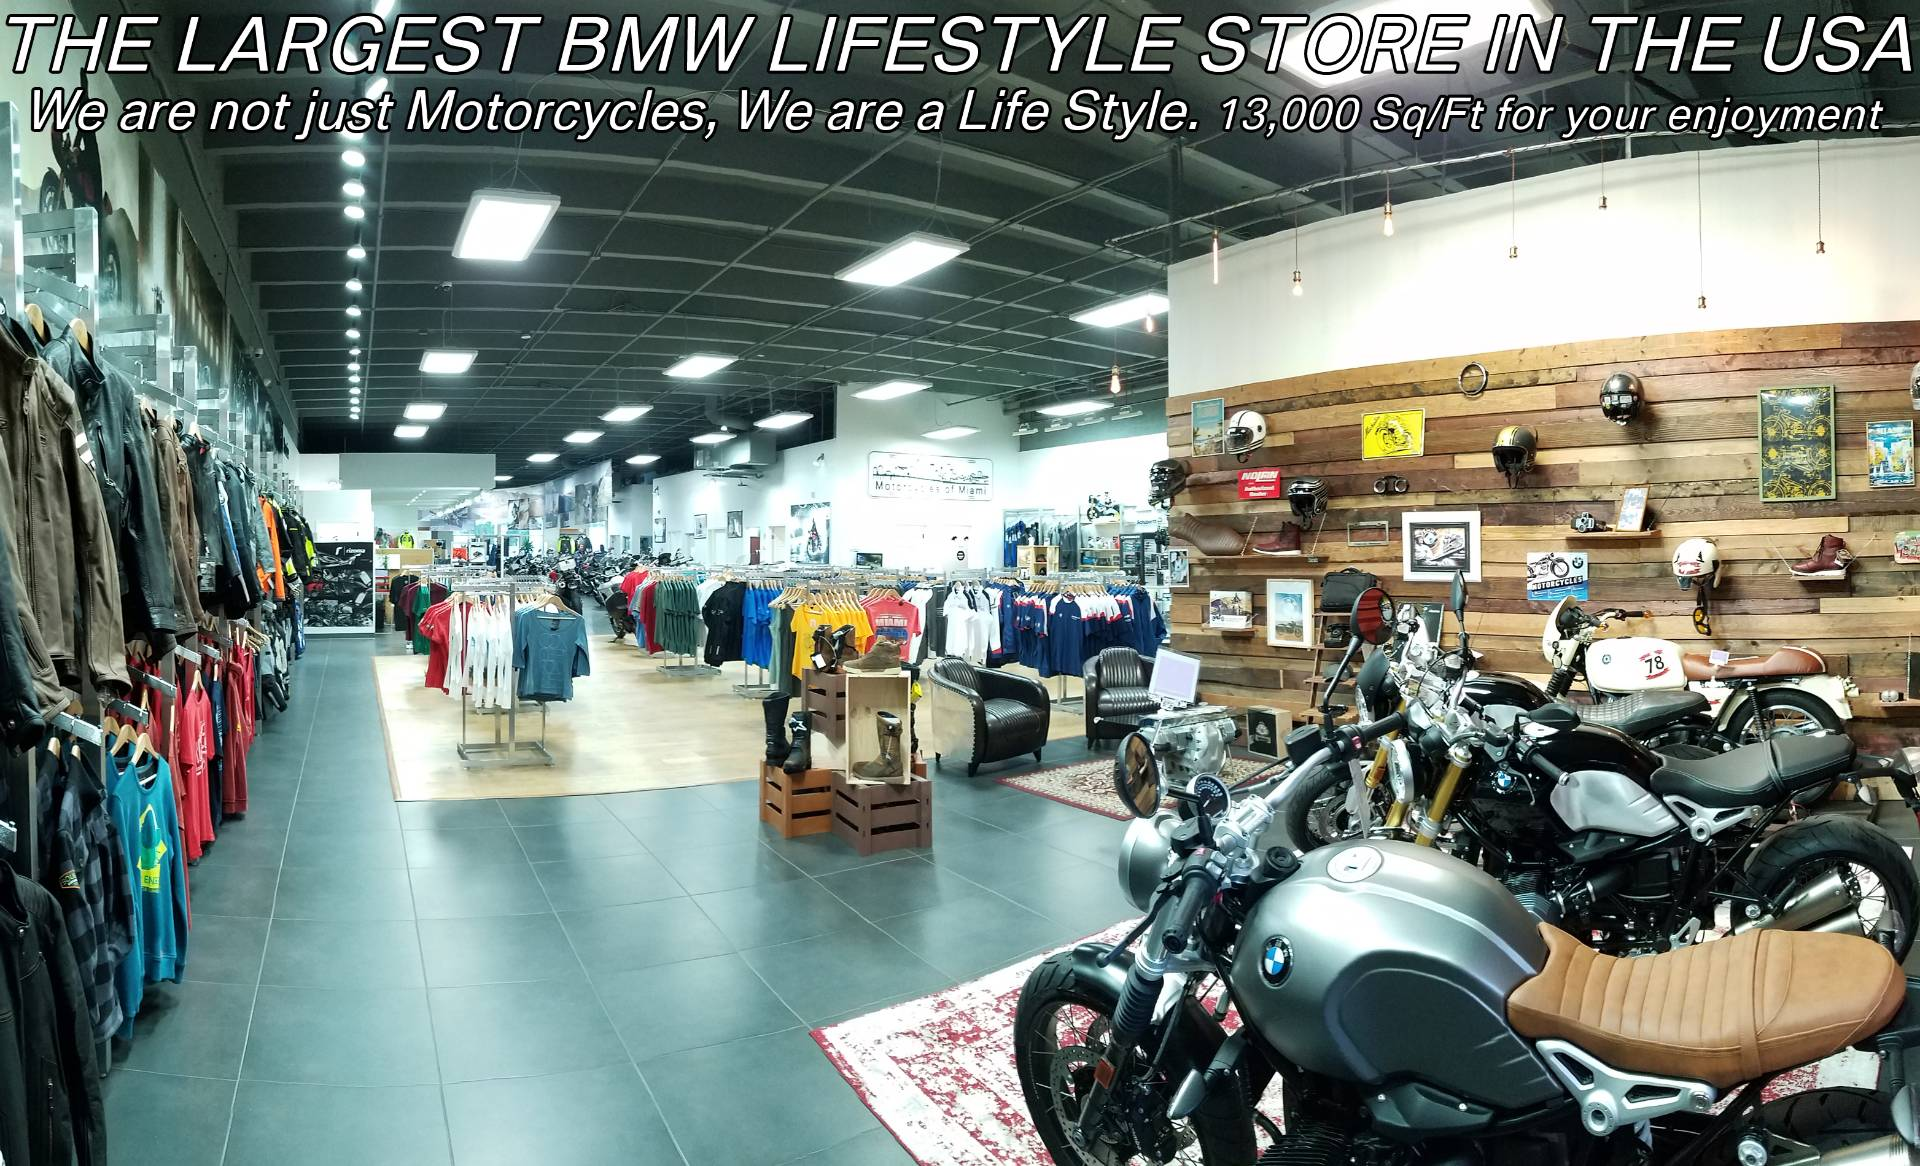 New 2019 BMW R 1250 GSA for sale, BMW for sale R 1250GSA, BMW Motorcycle R1250GSA, new BMW 1250GS Adventure, R1250GSAdventure, BMW Adventure, BMW Motorcycles of Miami, Motorcycles of Miami - Photo 39